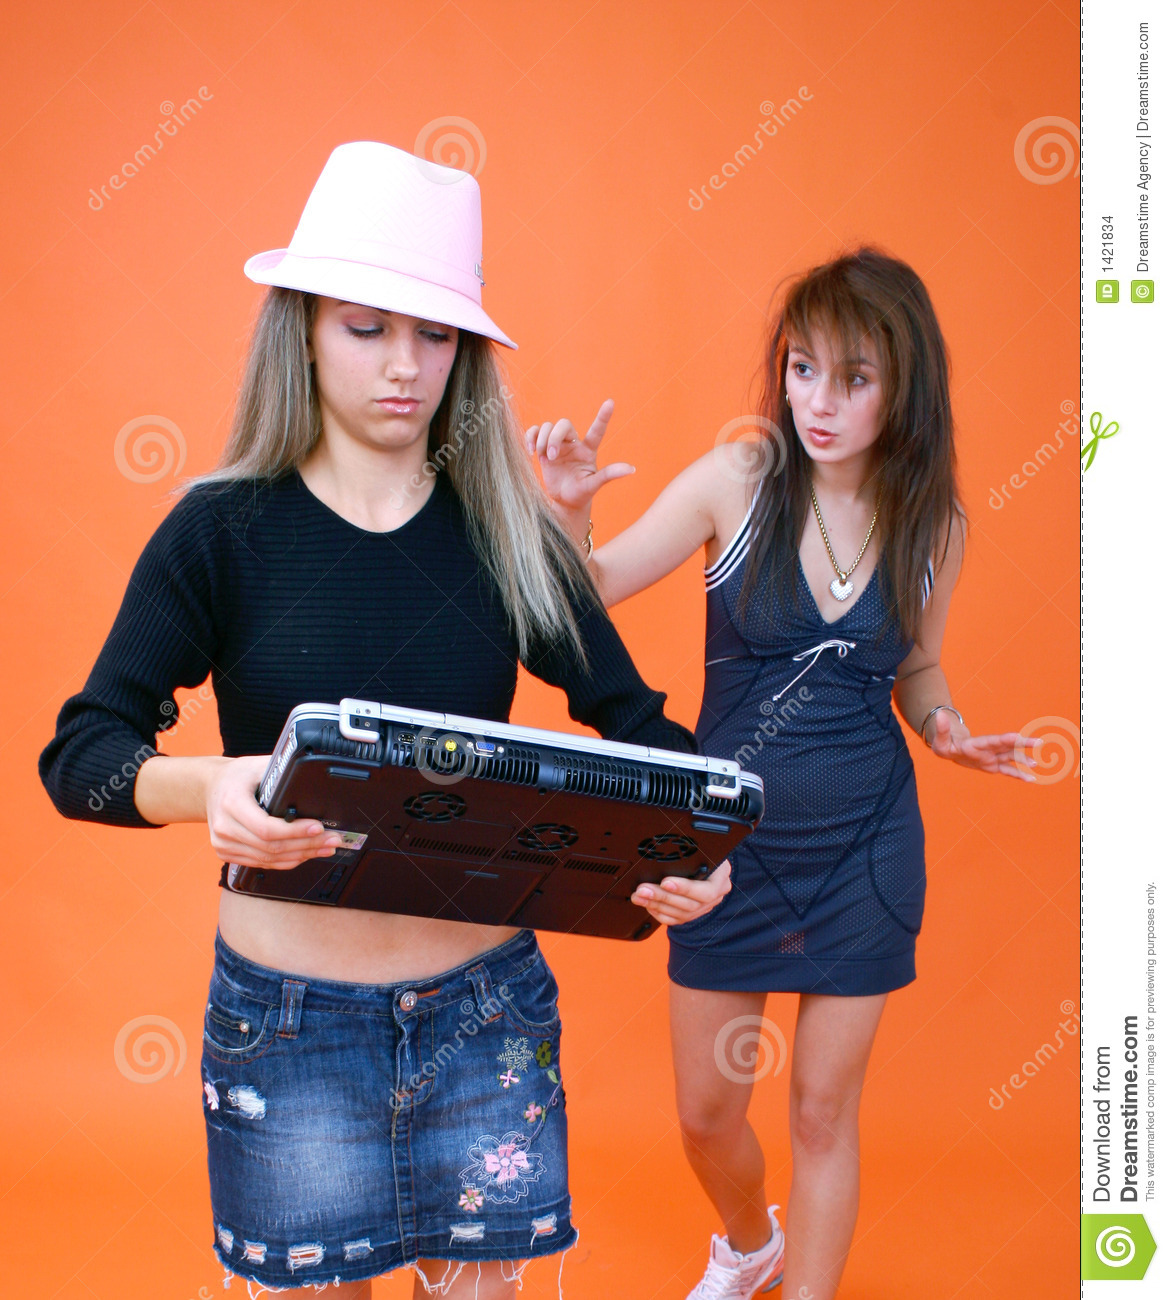 Two Women And A Laptop 3